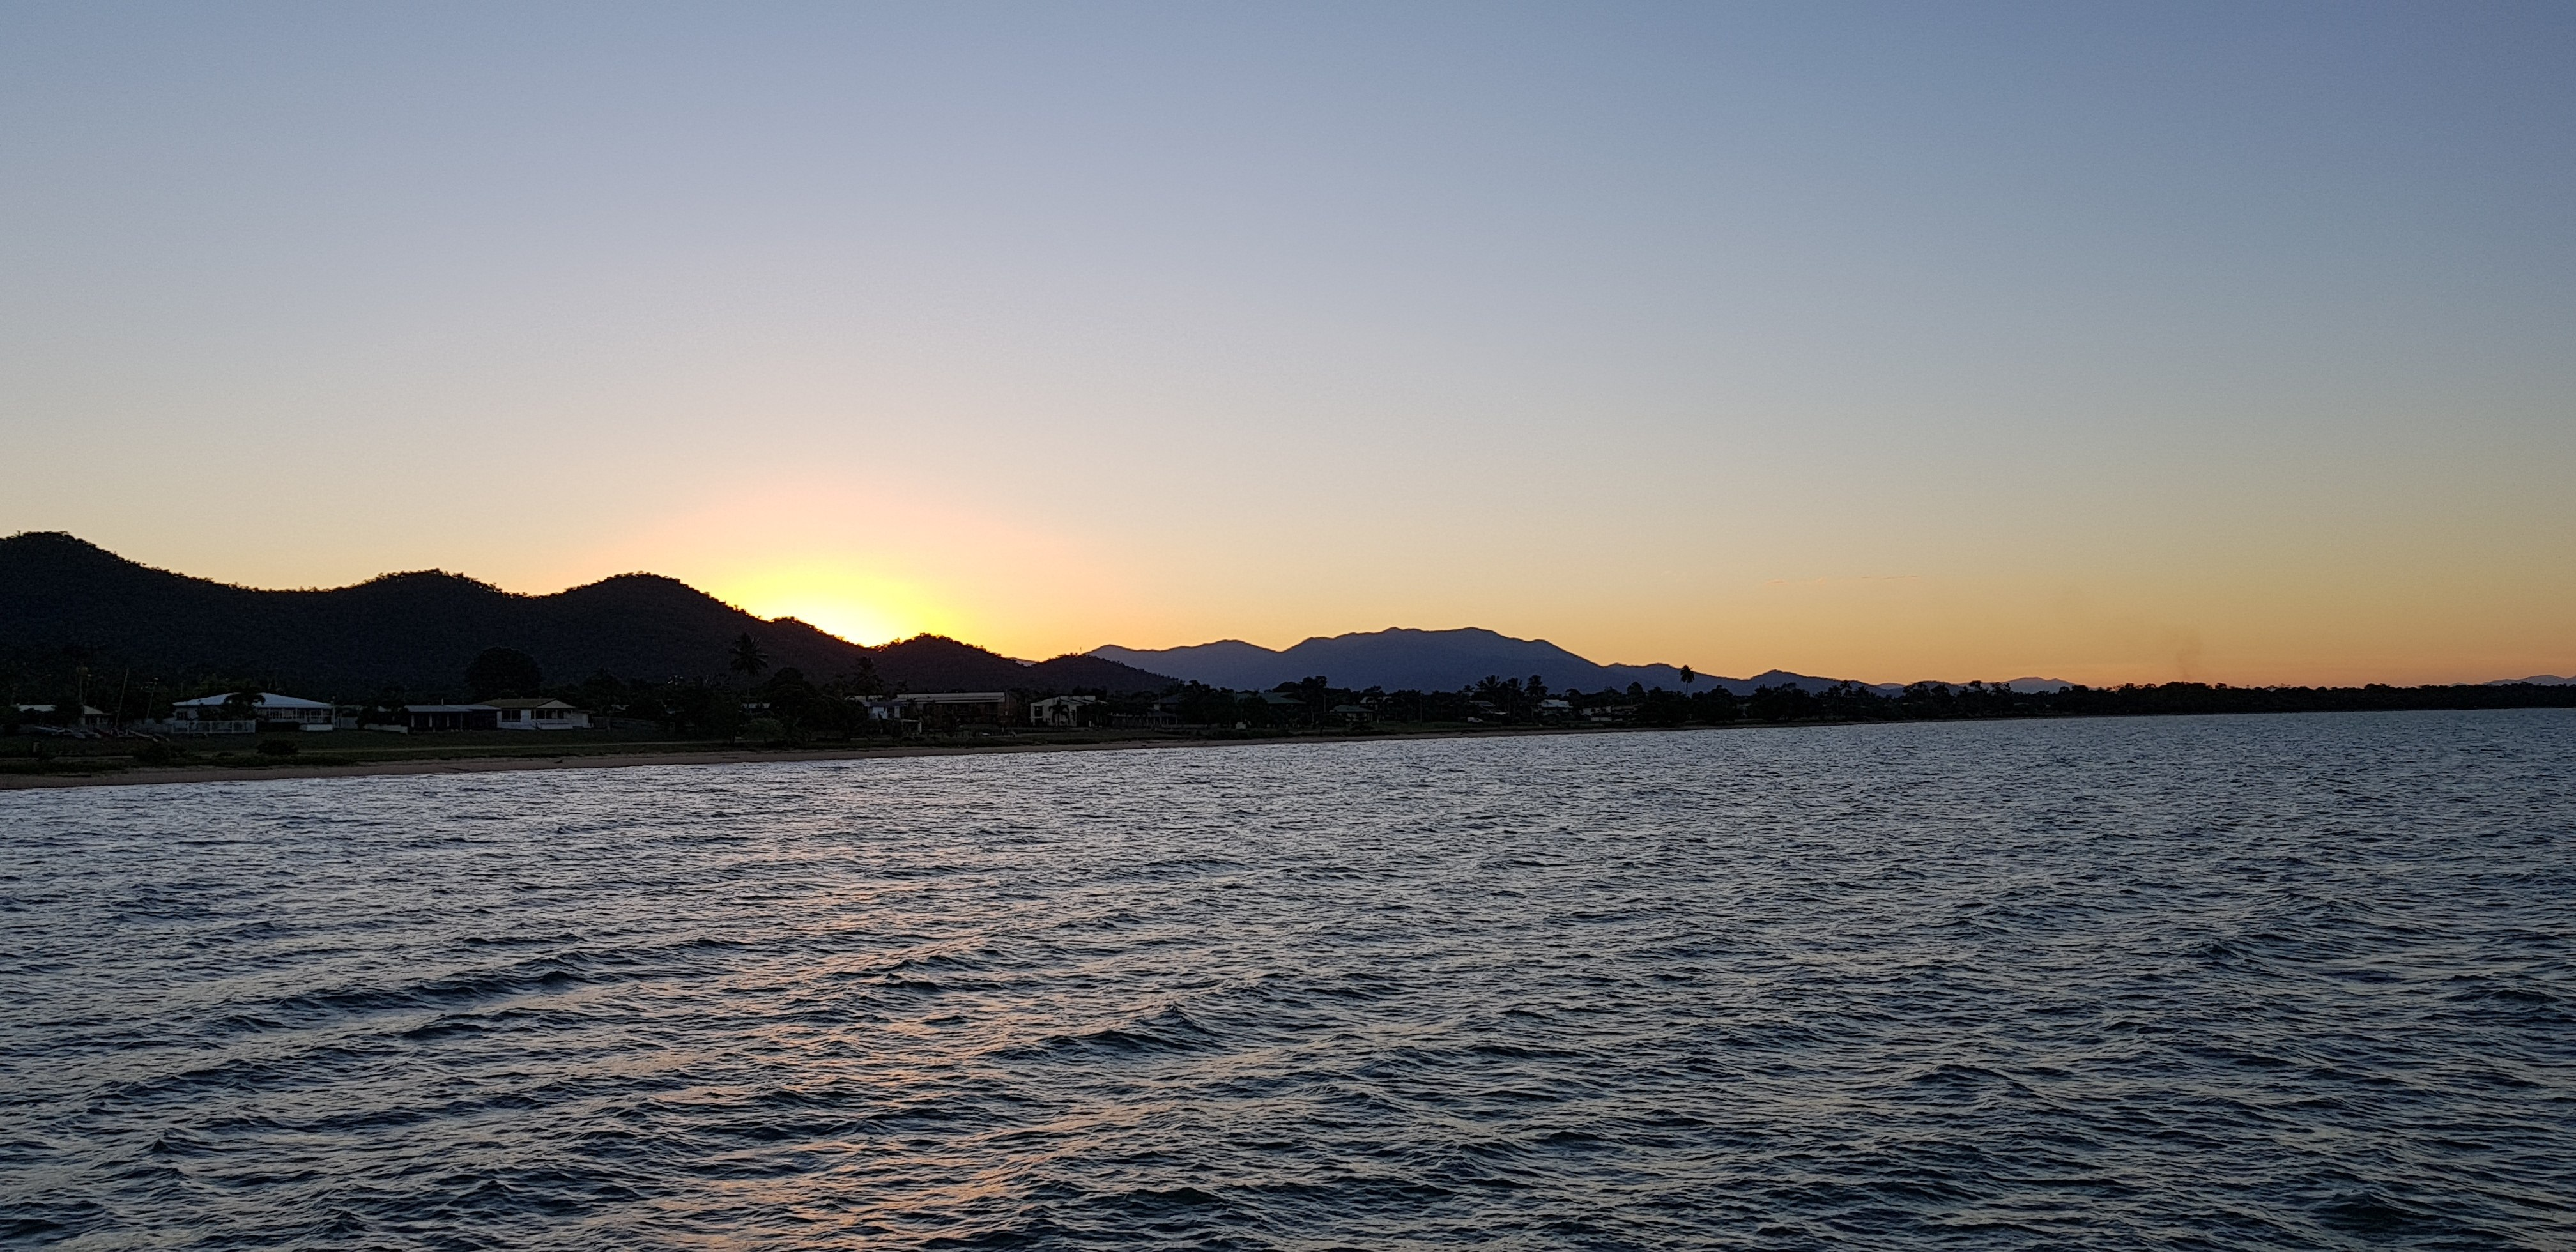 Sunset at Cardwell from the end of the jetty